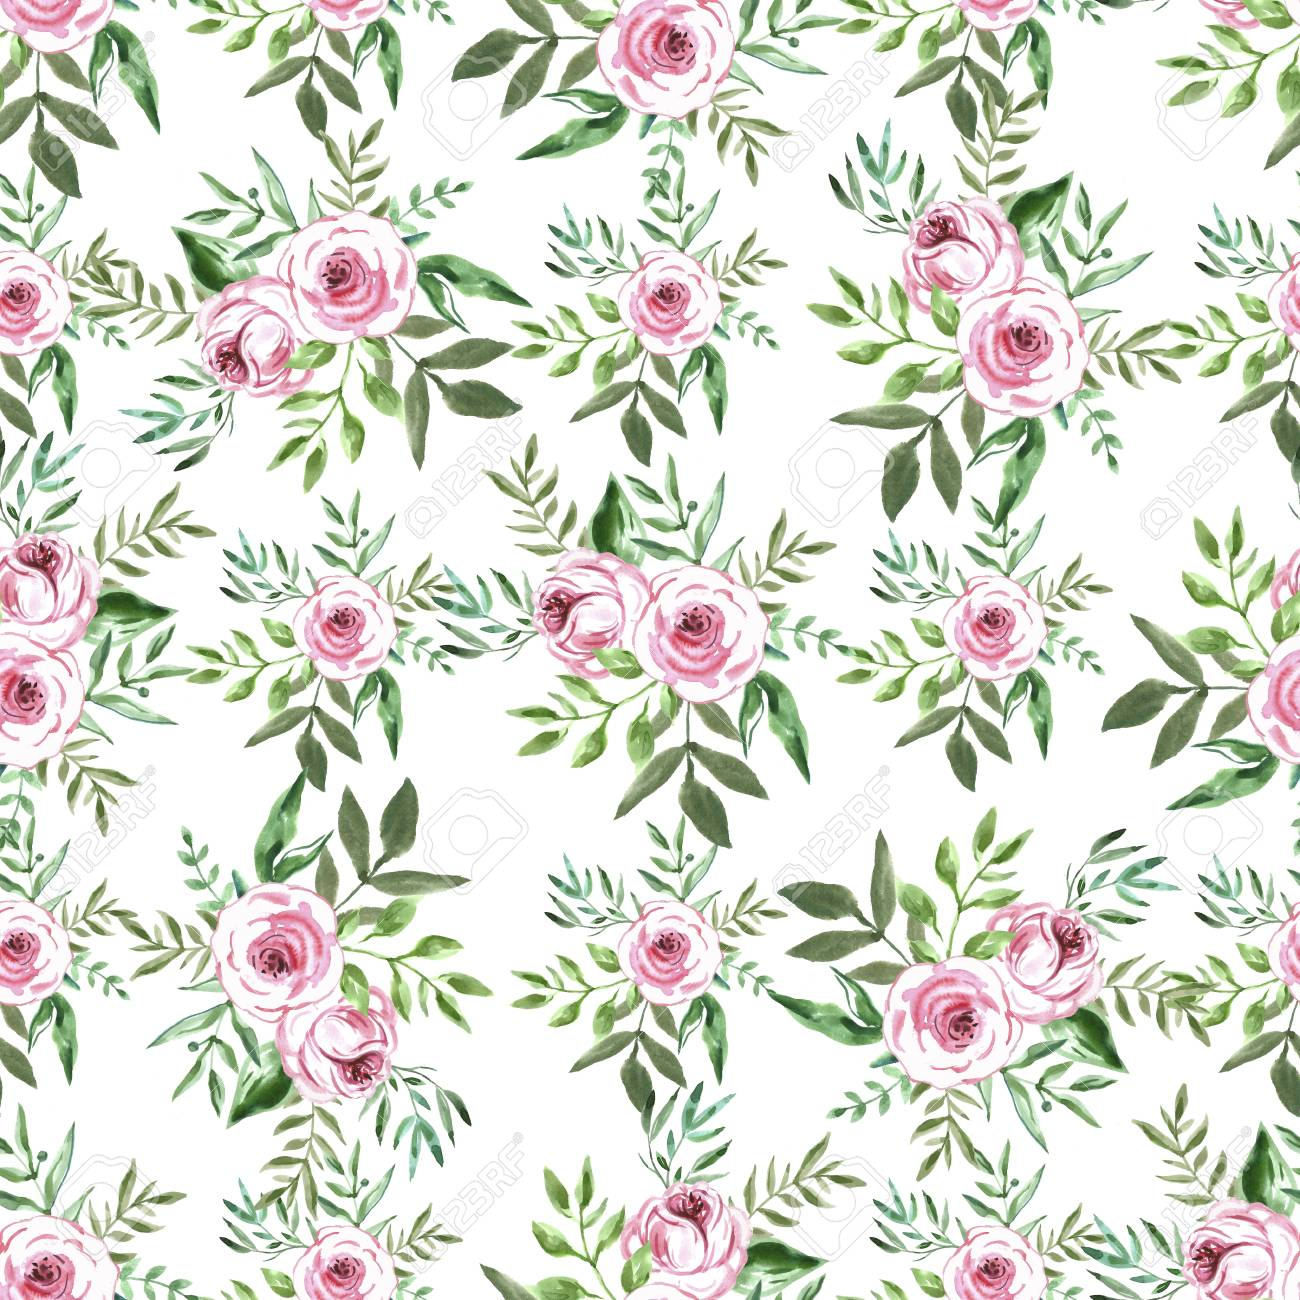 Decorative Seamless Pattern With Flowers Beautiful Floral